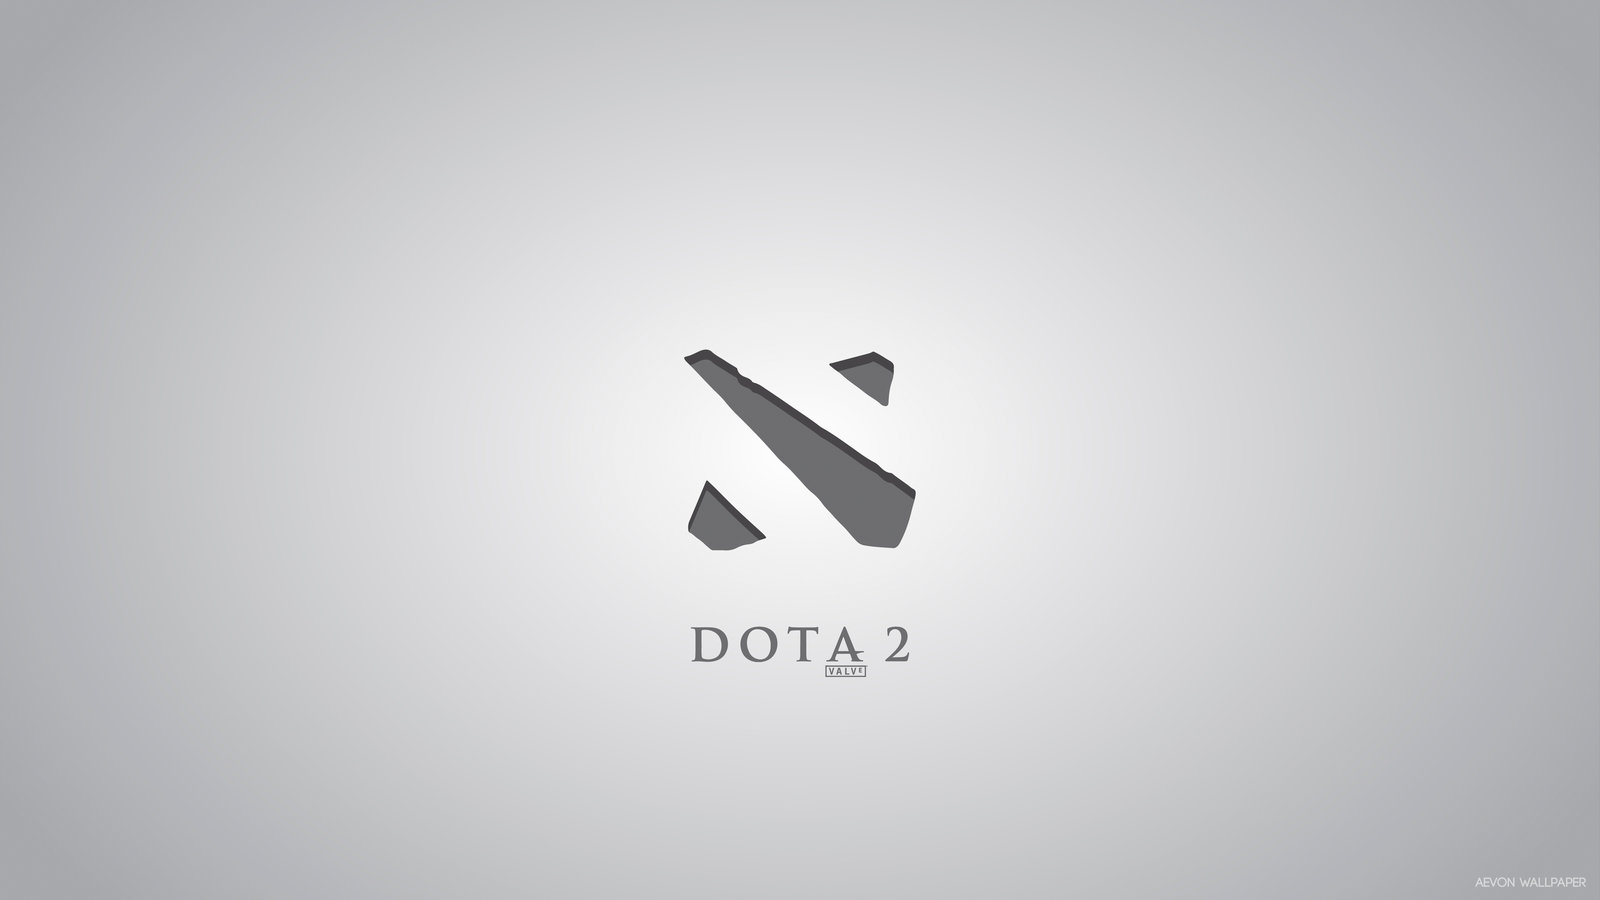 Dota 2 Logo Wallpaper For Android Is Cool Wallpapers